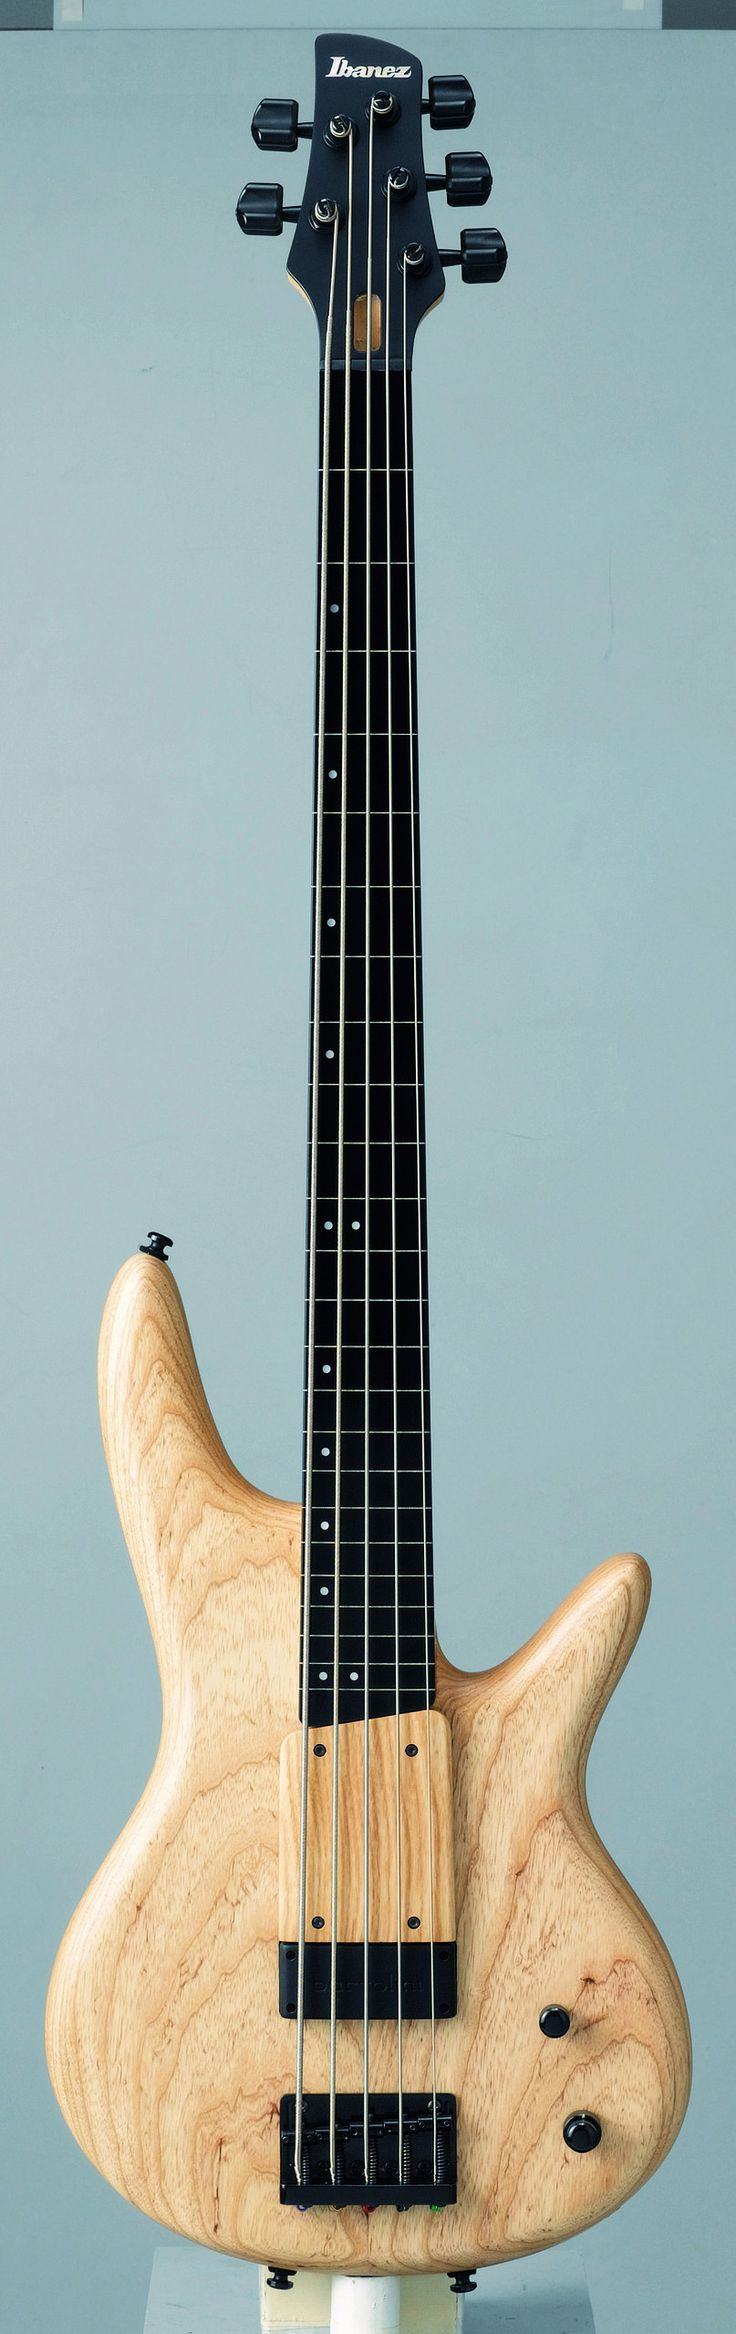 Ibanez Gary Willis Handcrafted Japanese Fretless Bass